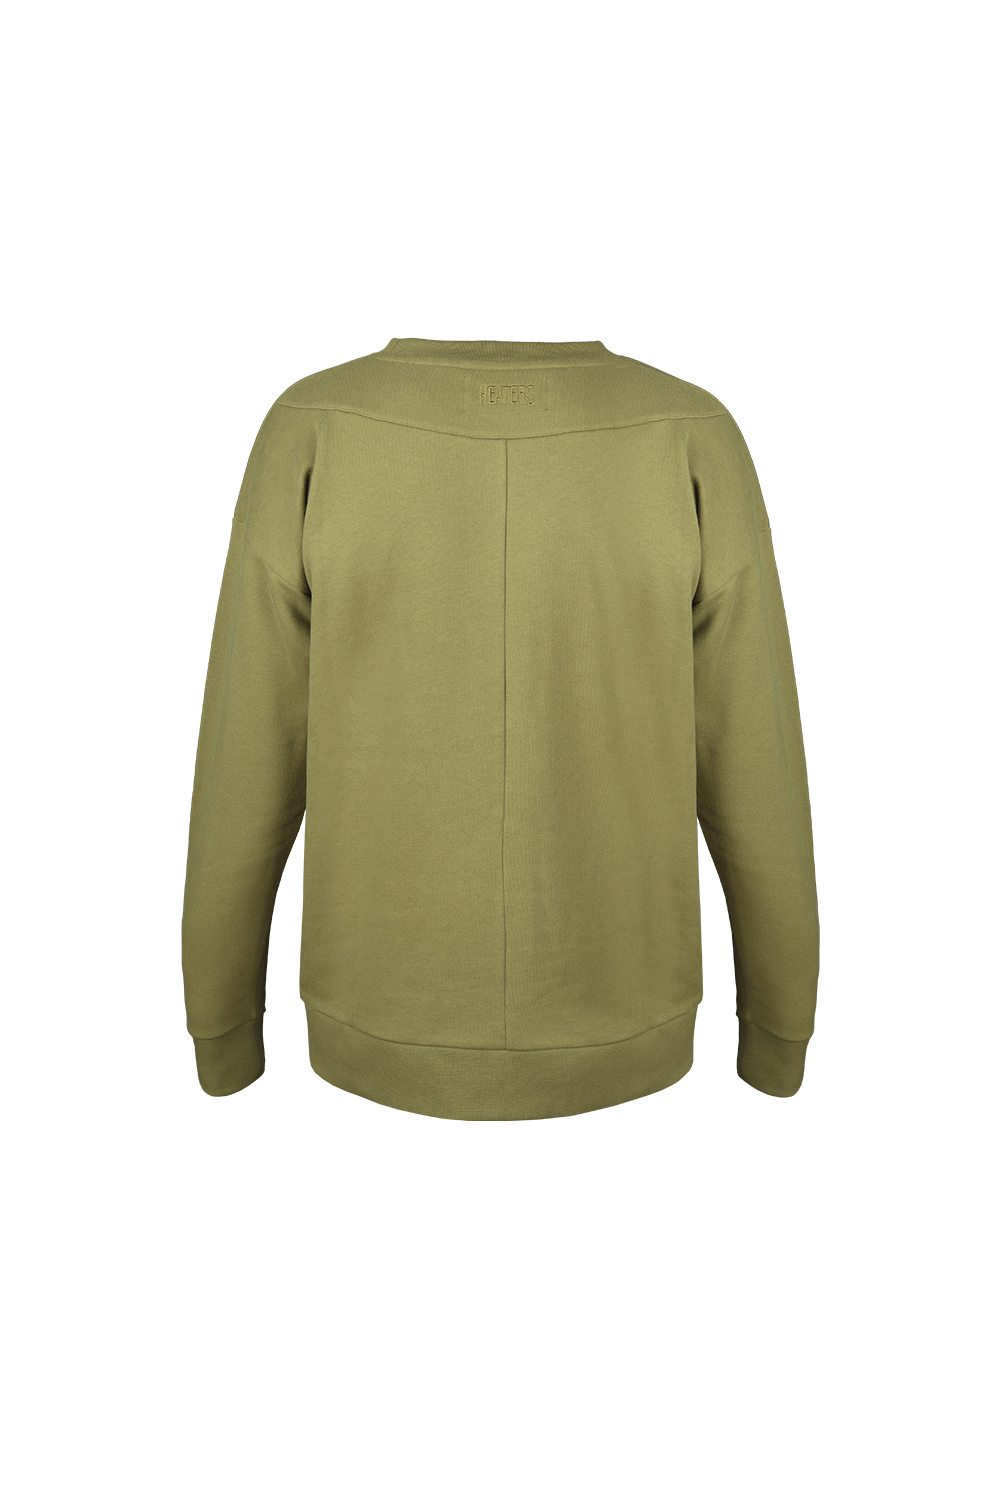 DROPPED SWEATER BURNT OLIVE